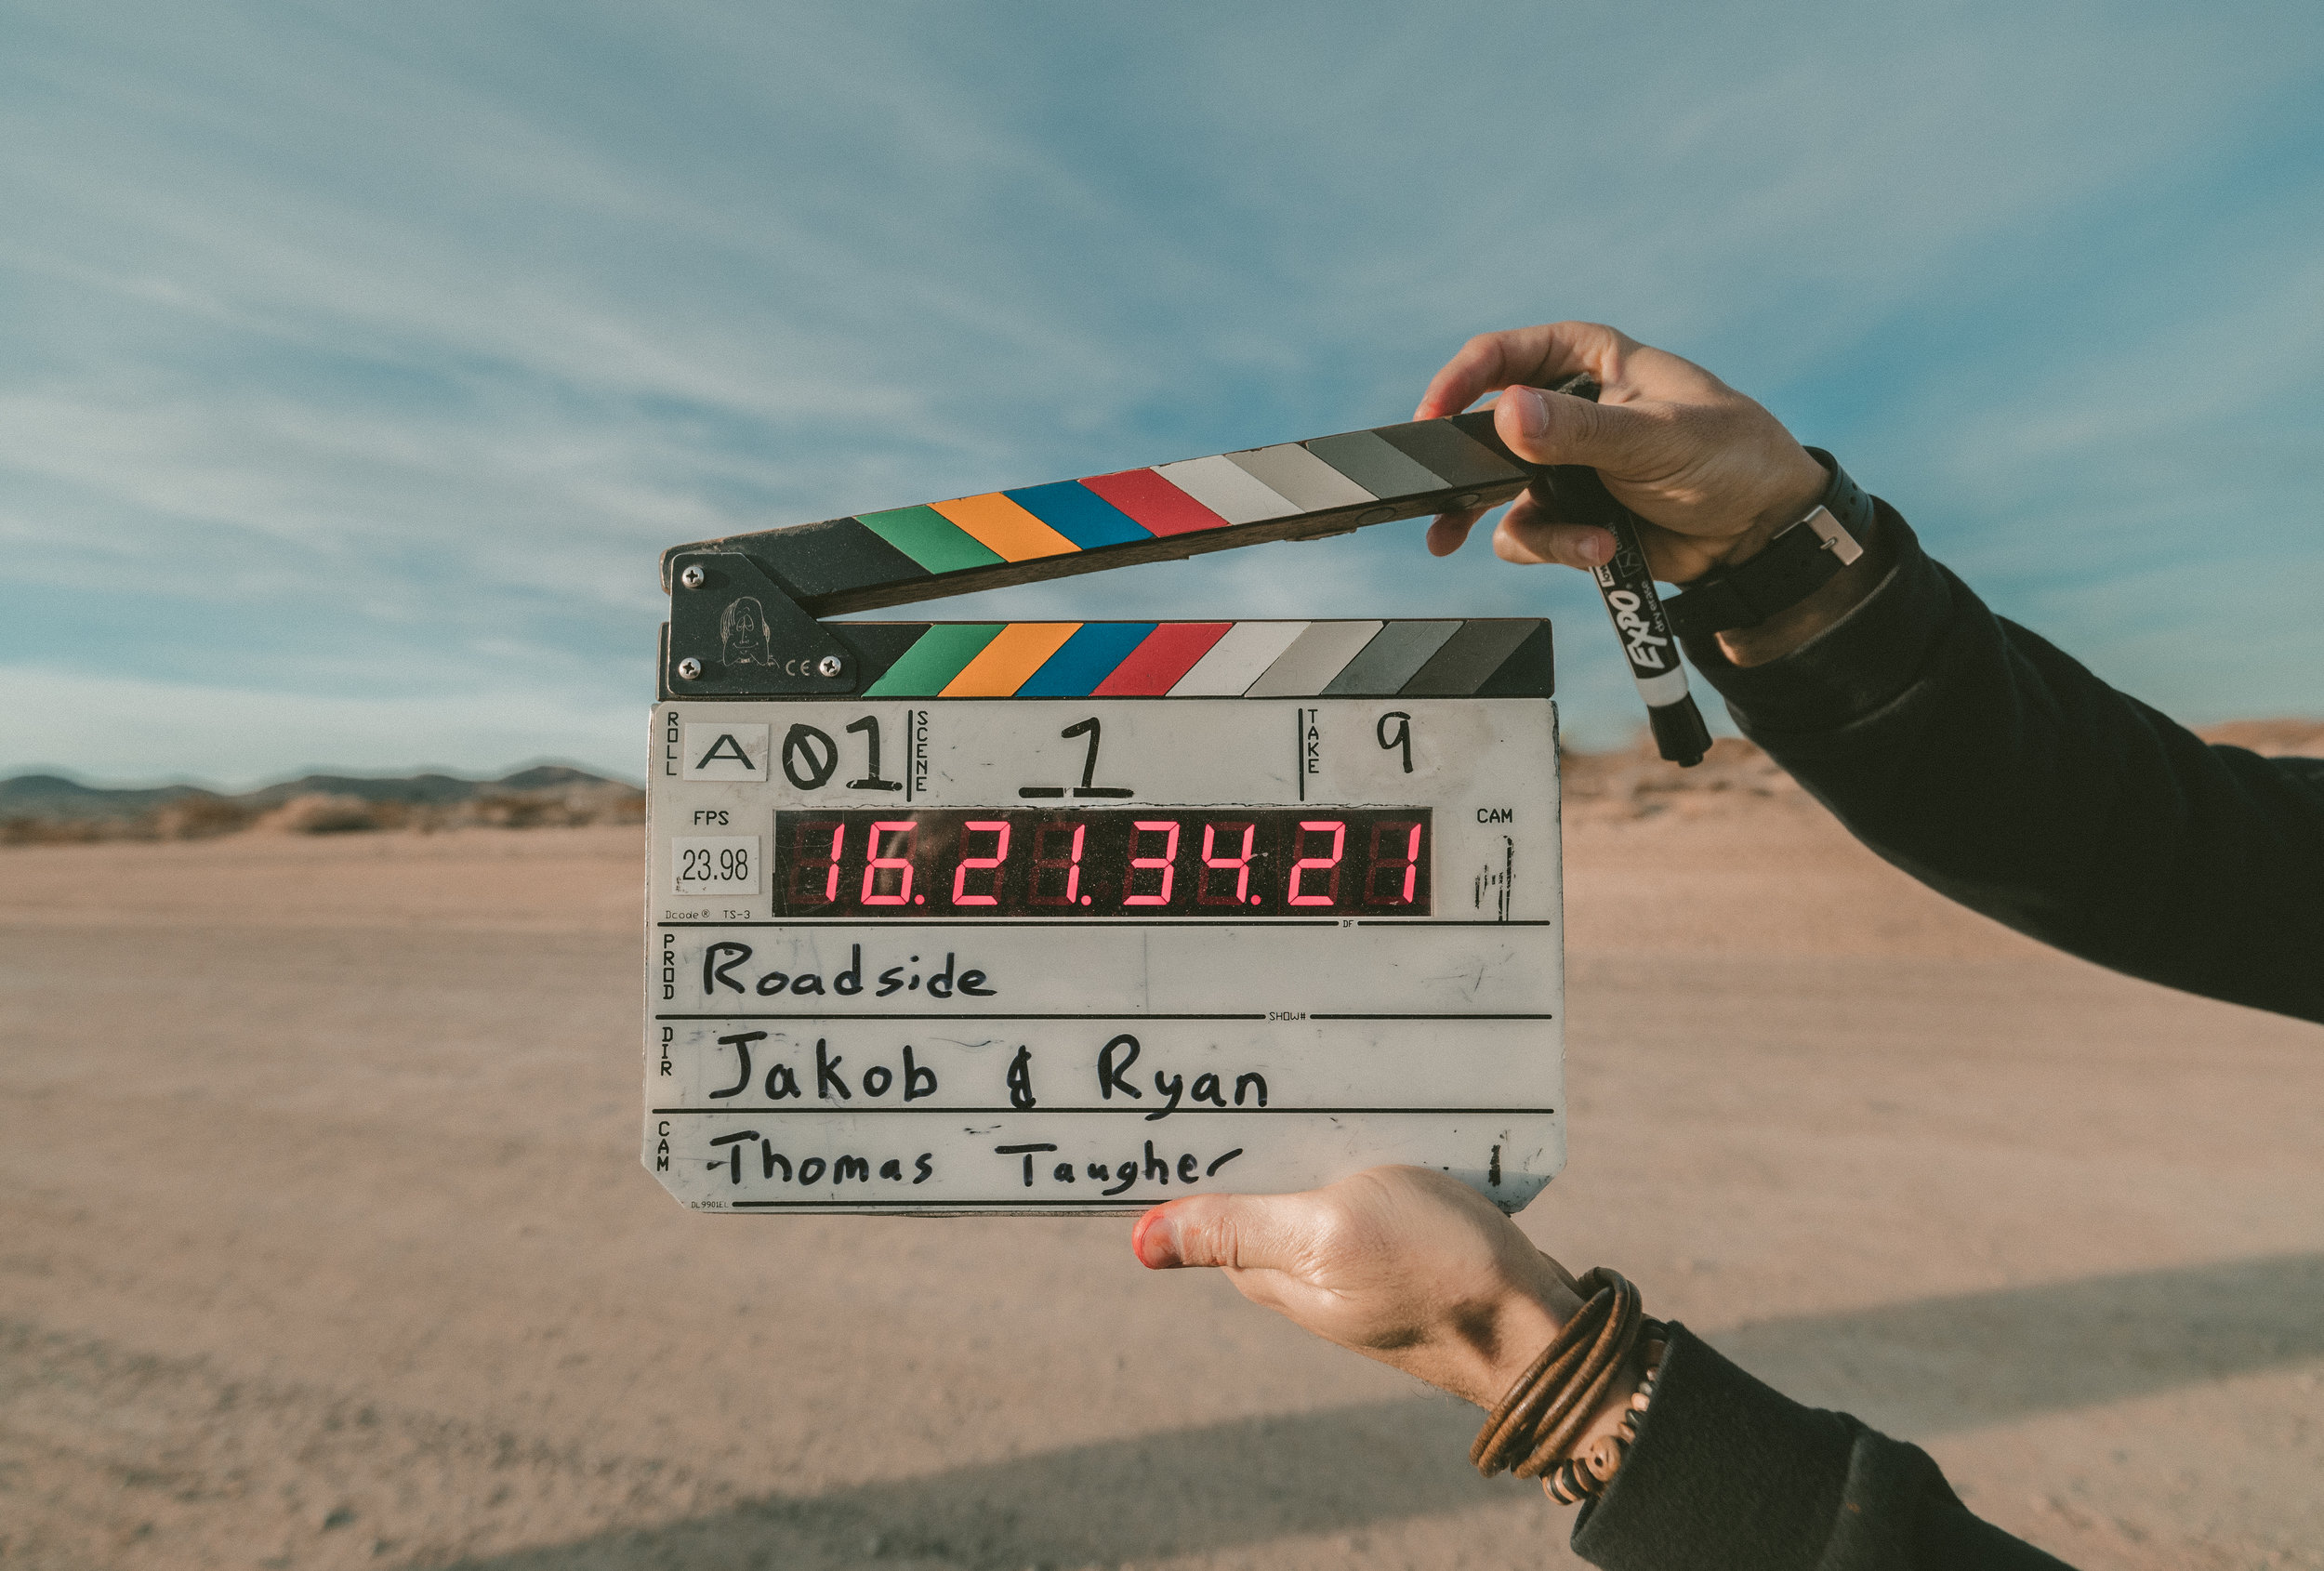 VIDEO PRODUCTION SERVICES - Writers, Directors, Producers, Editors, Steadicam, Camera Gimbals, Lighting, Grip and all Video Productions Services.